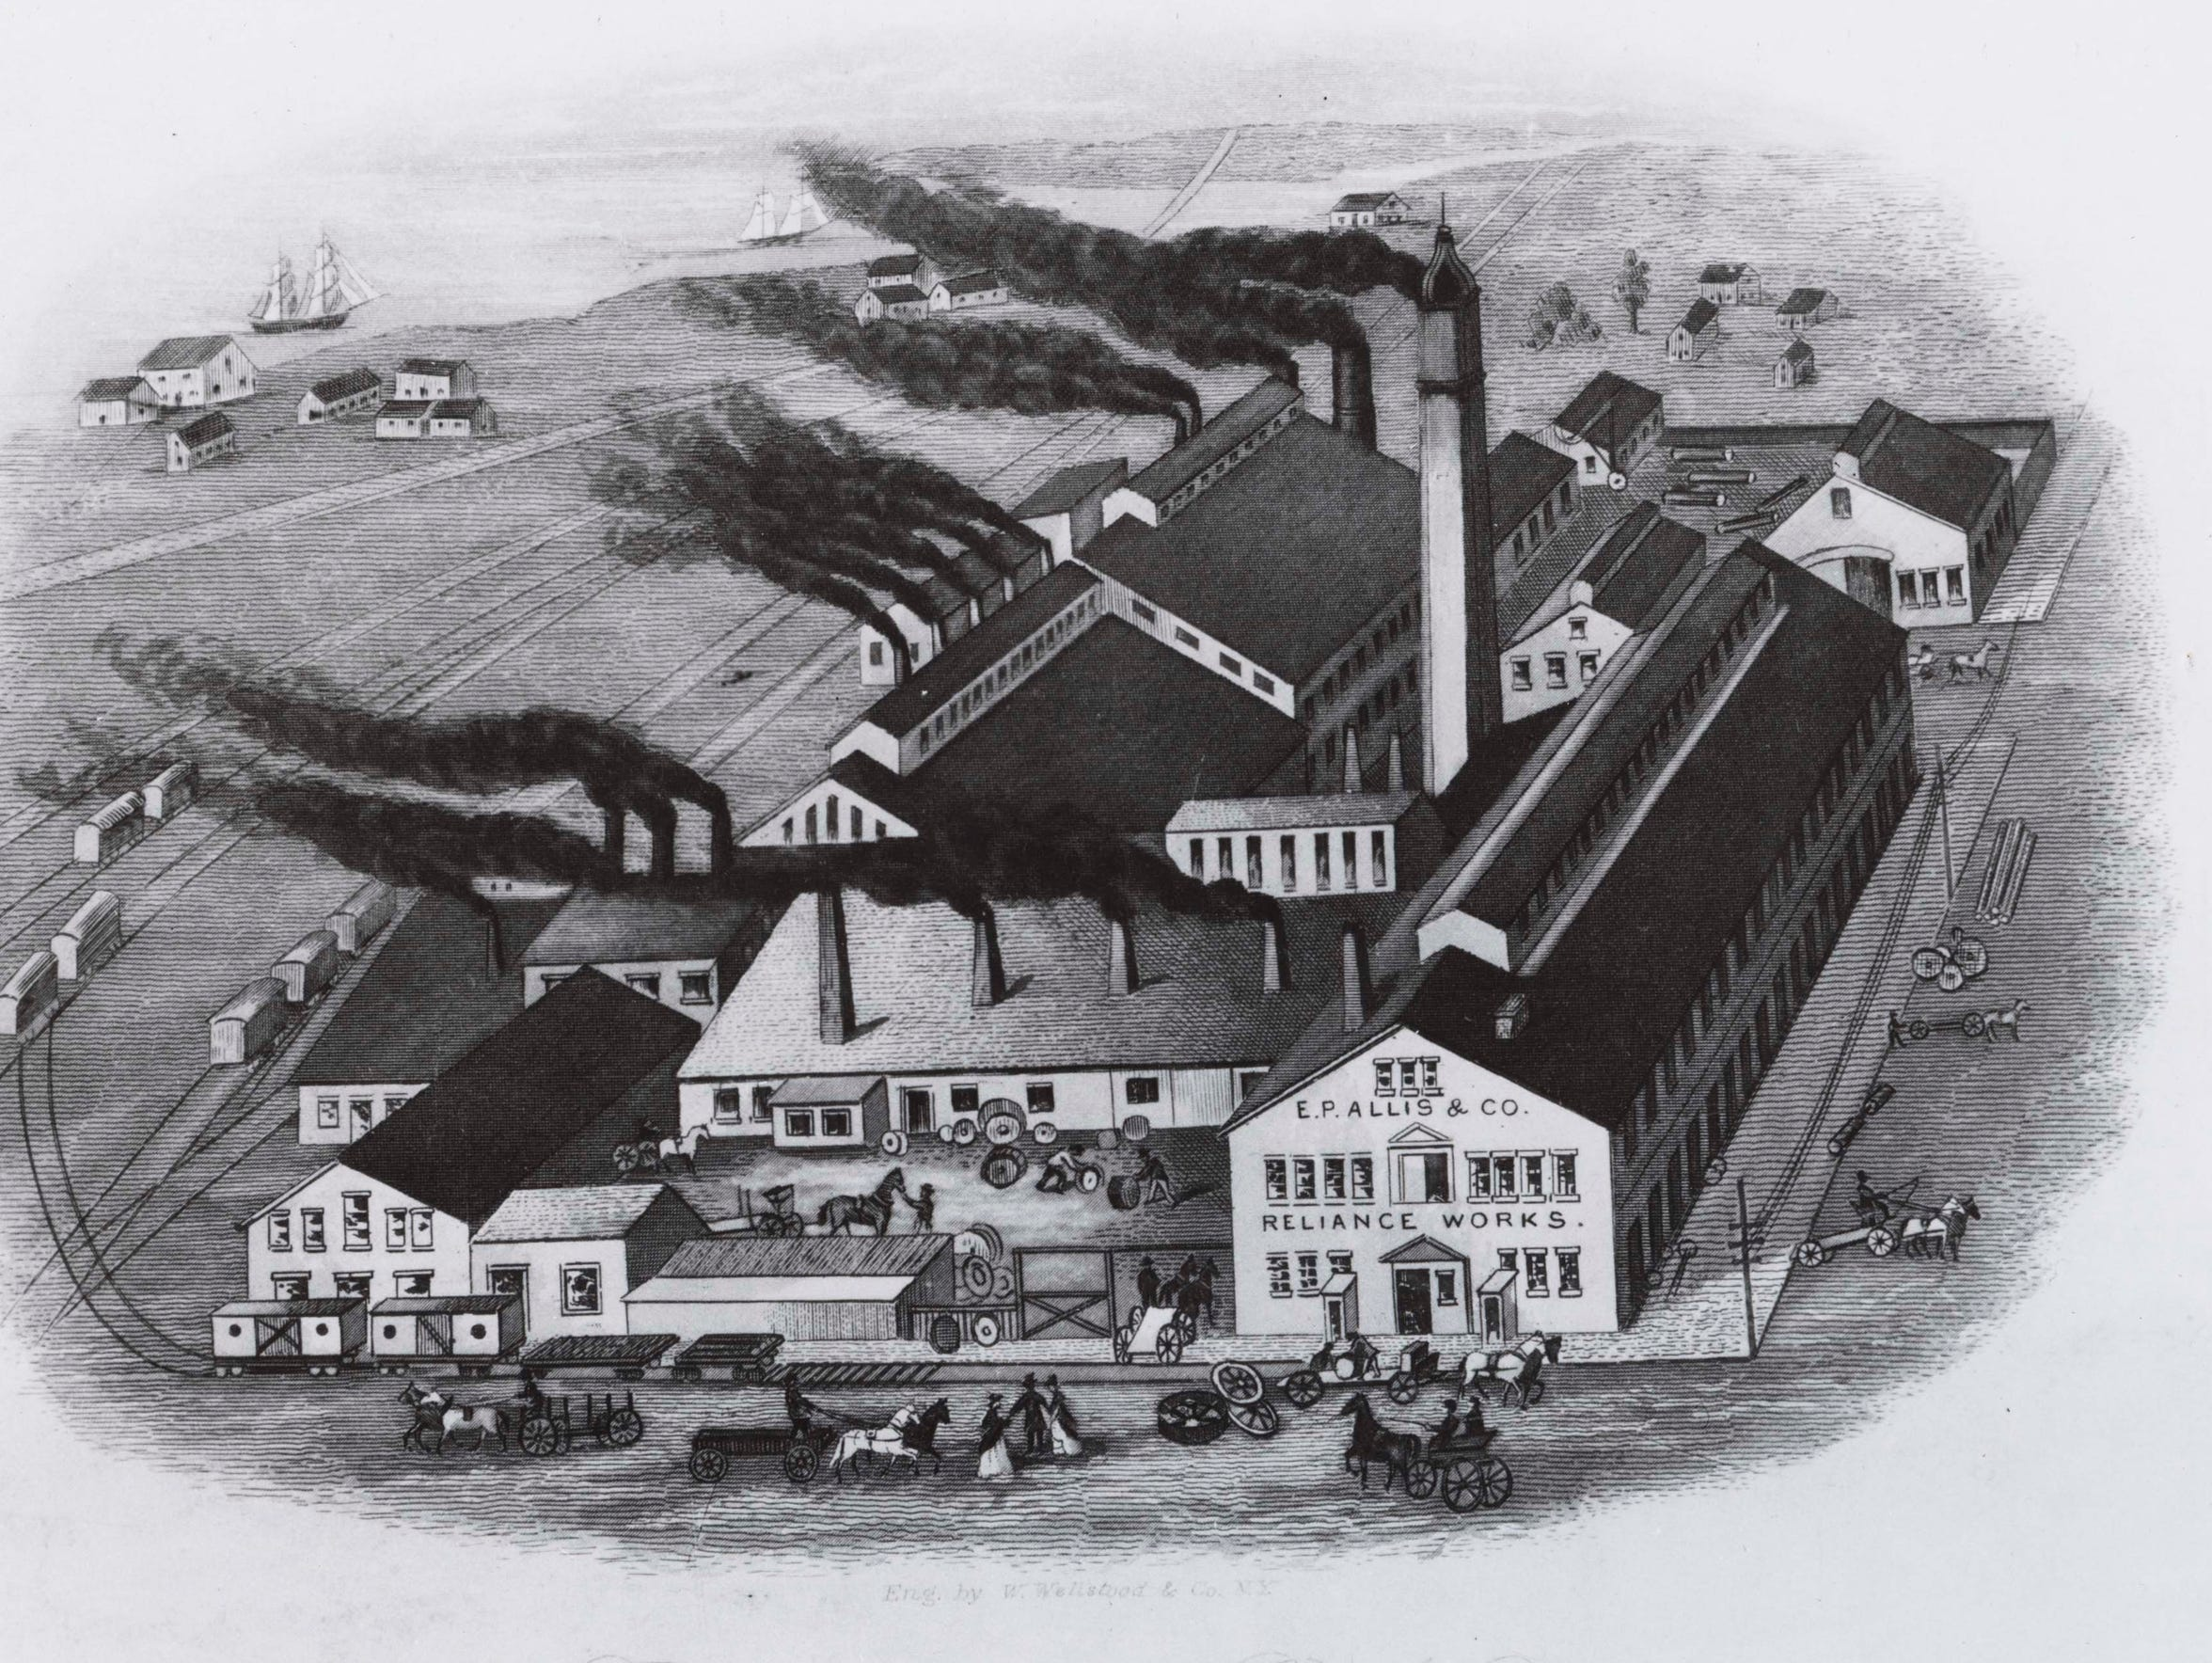 In 1867 Edward P. Allis opened his Reliance Works on